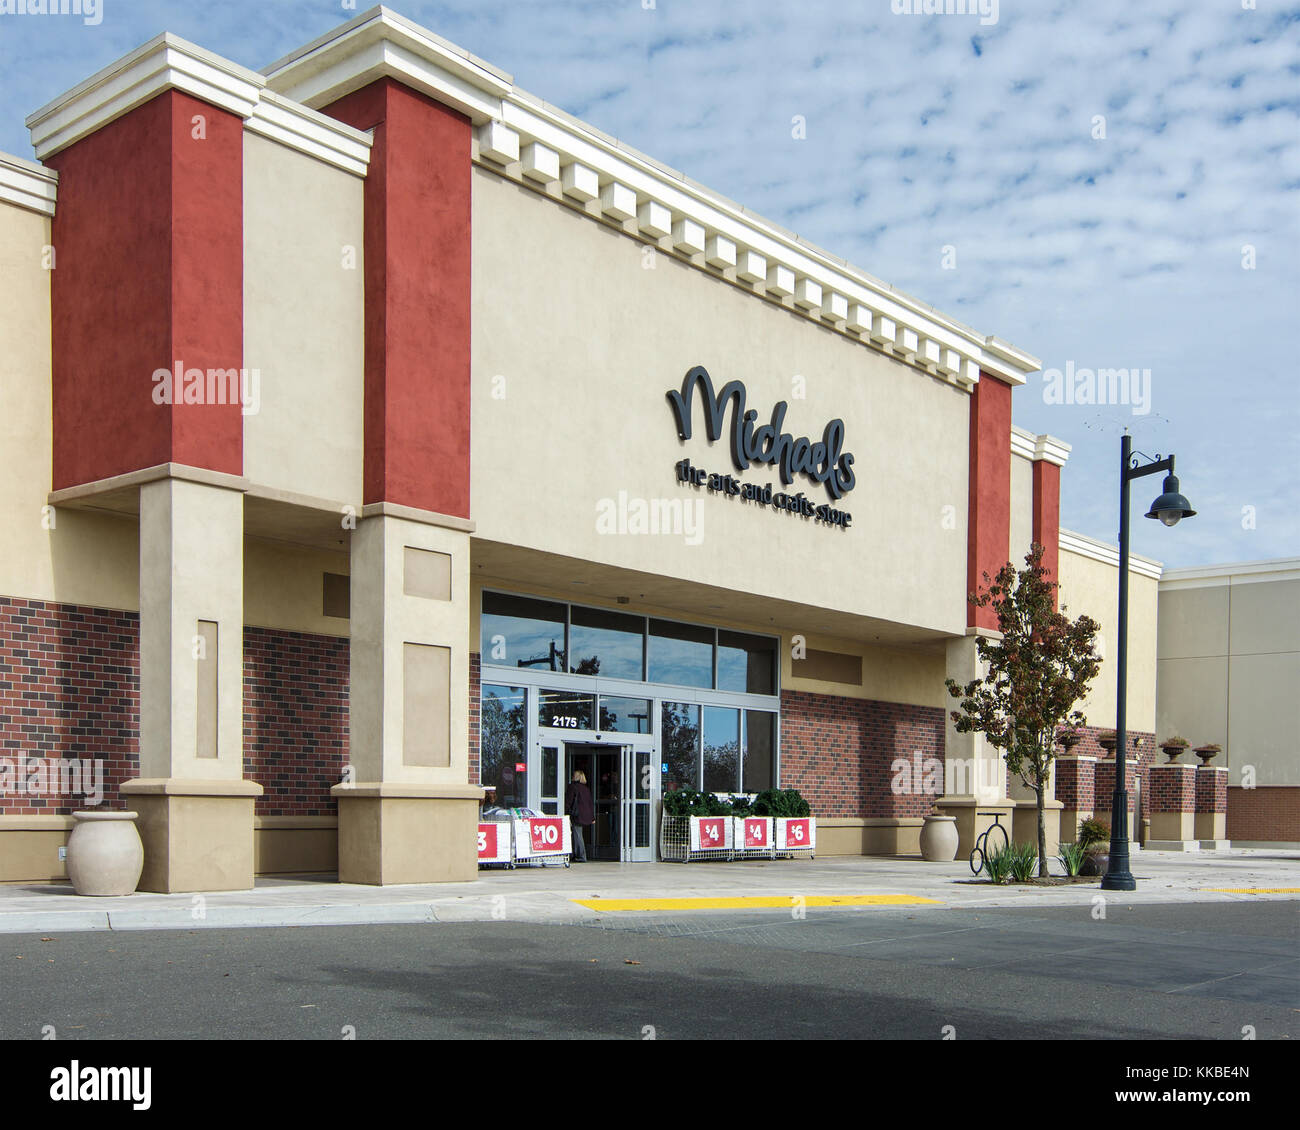 Michaels arts and crafts store at Woodland Gateway Shopping Center, California, USA, on a sunny day with some clouds - Stock Image